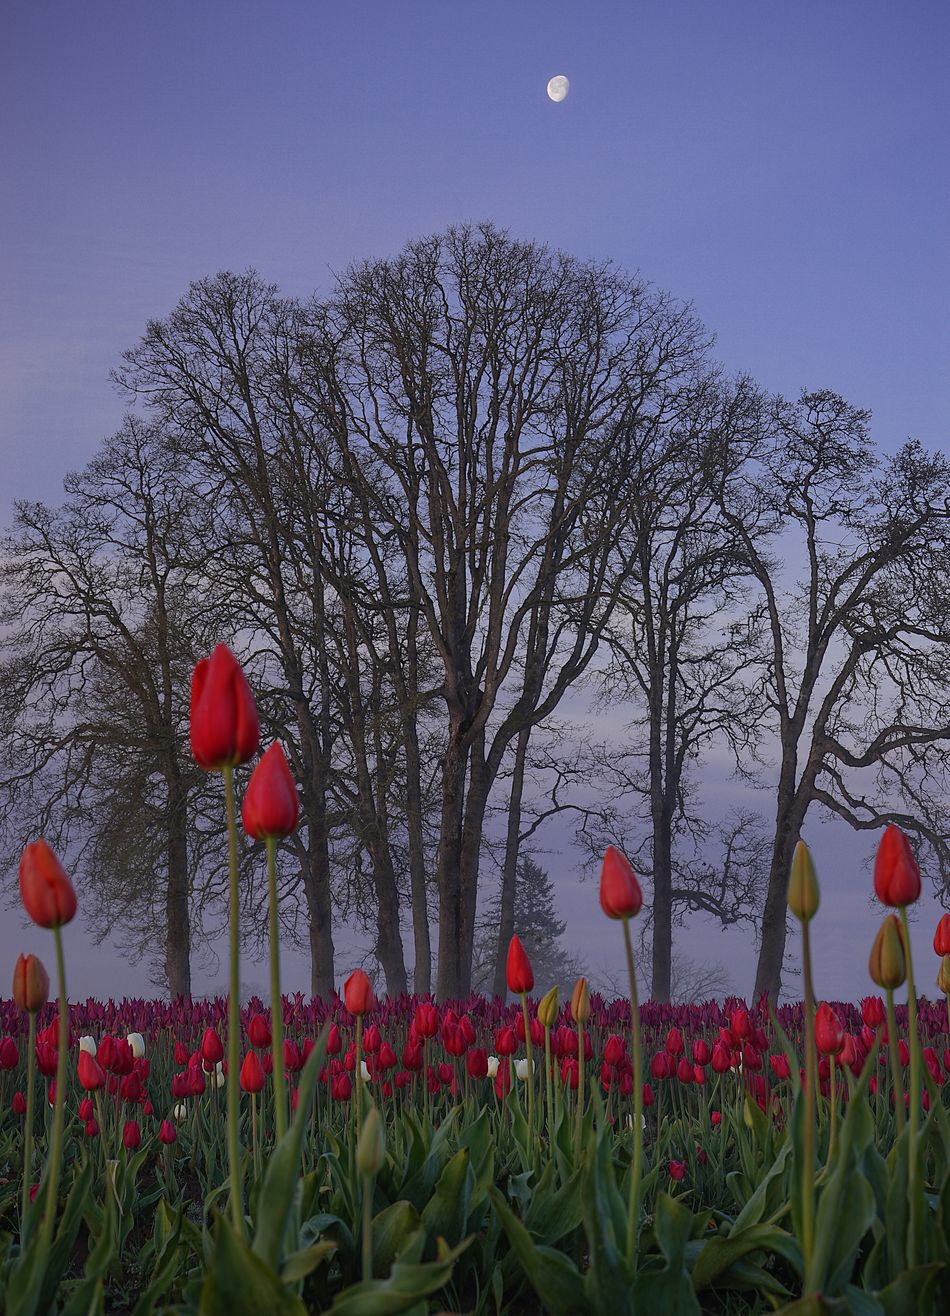 Red Flower Beauty In Nature Growth Nature Moon Outdoors Sky Poppy Low Angle View Plant Day No People Fragility Freshness Close-up Tulips In The Springtime Oregon